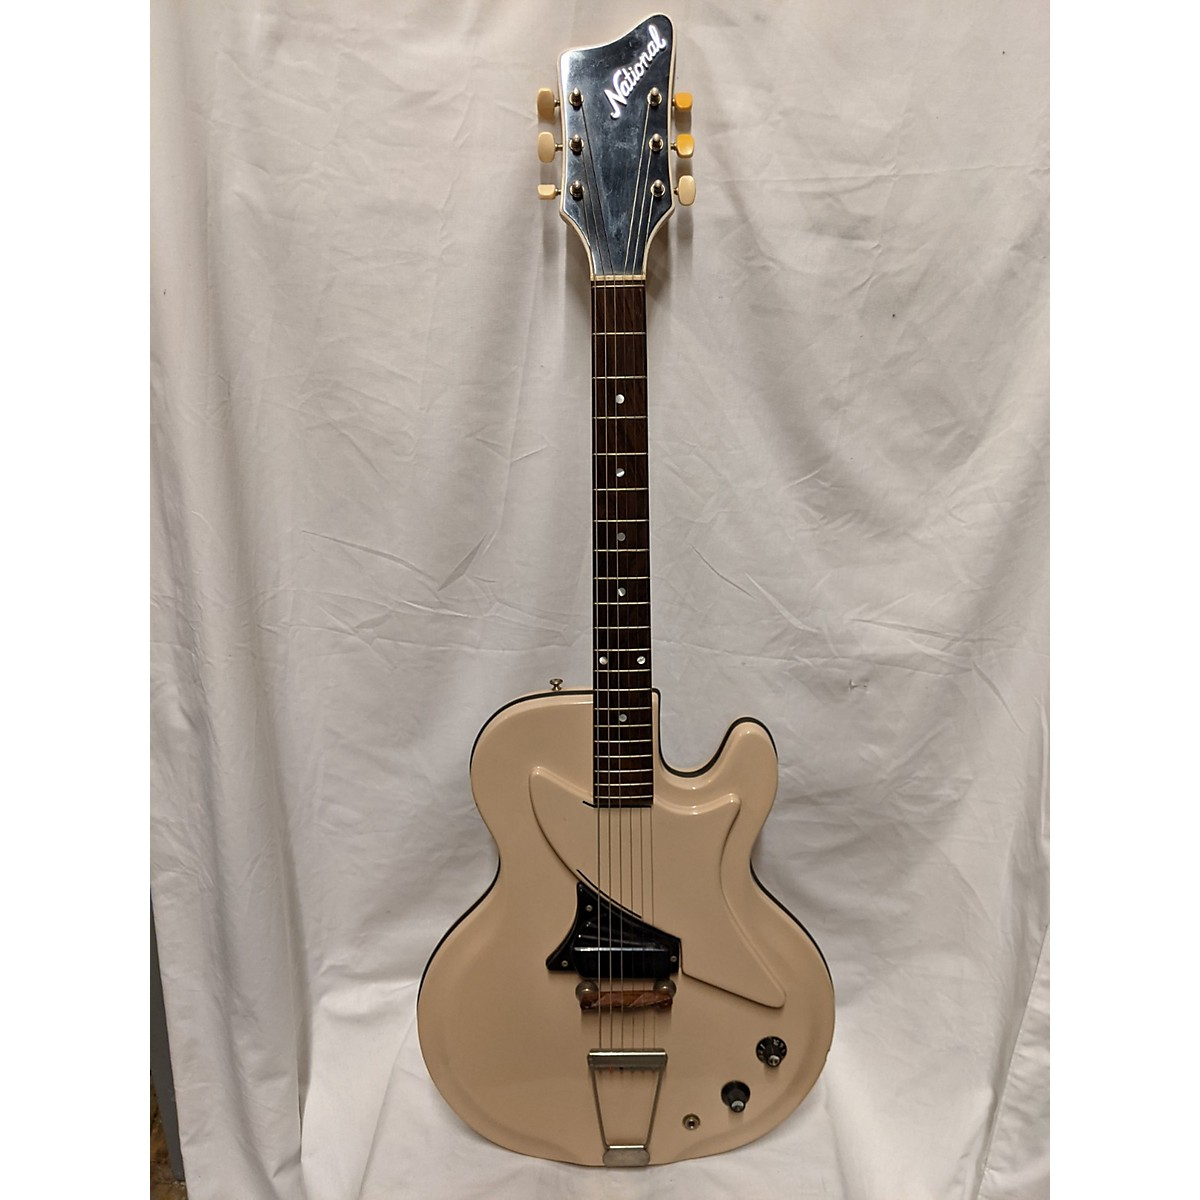 National 1962 Studio 66 Solid Body Electric Guitar